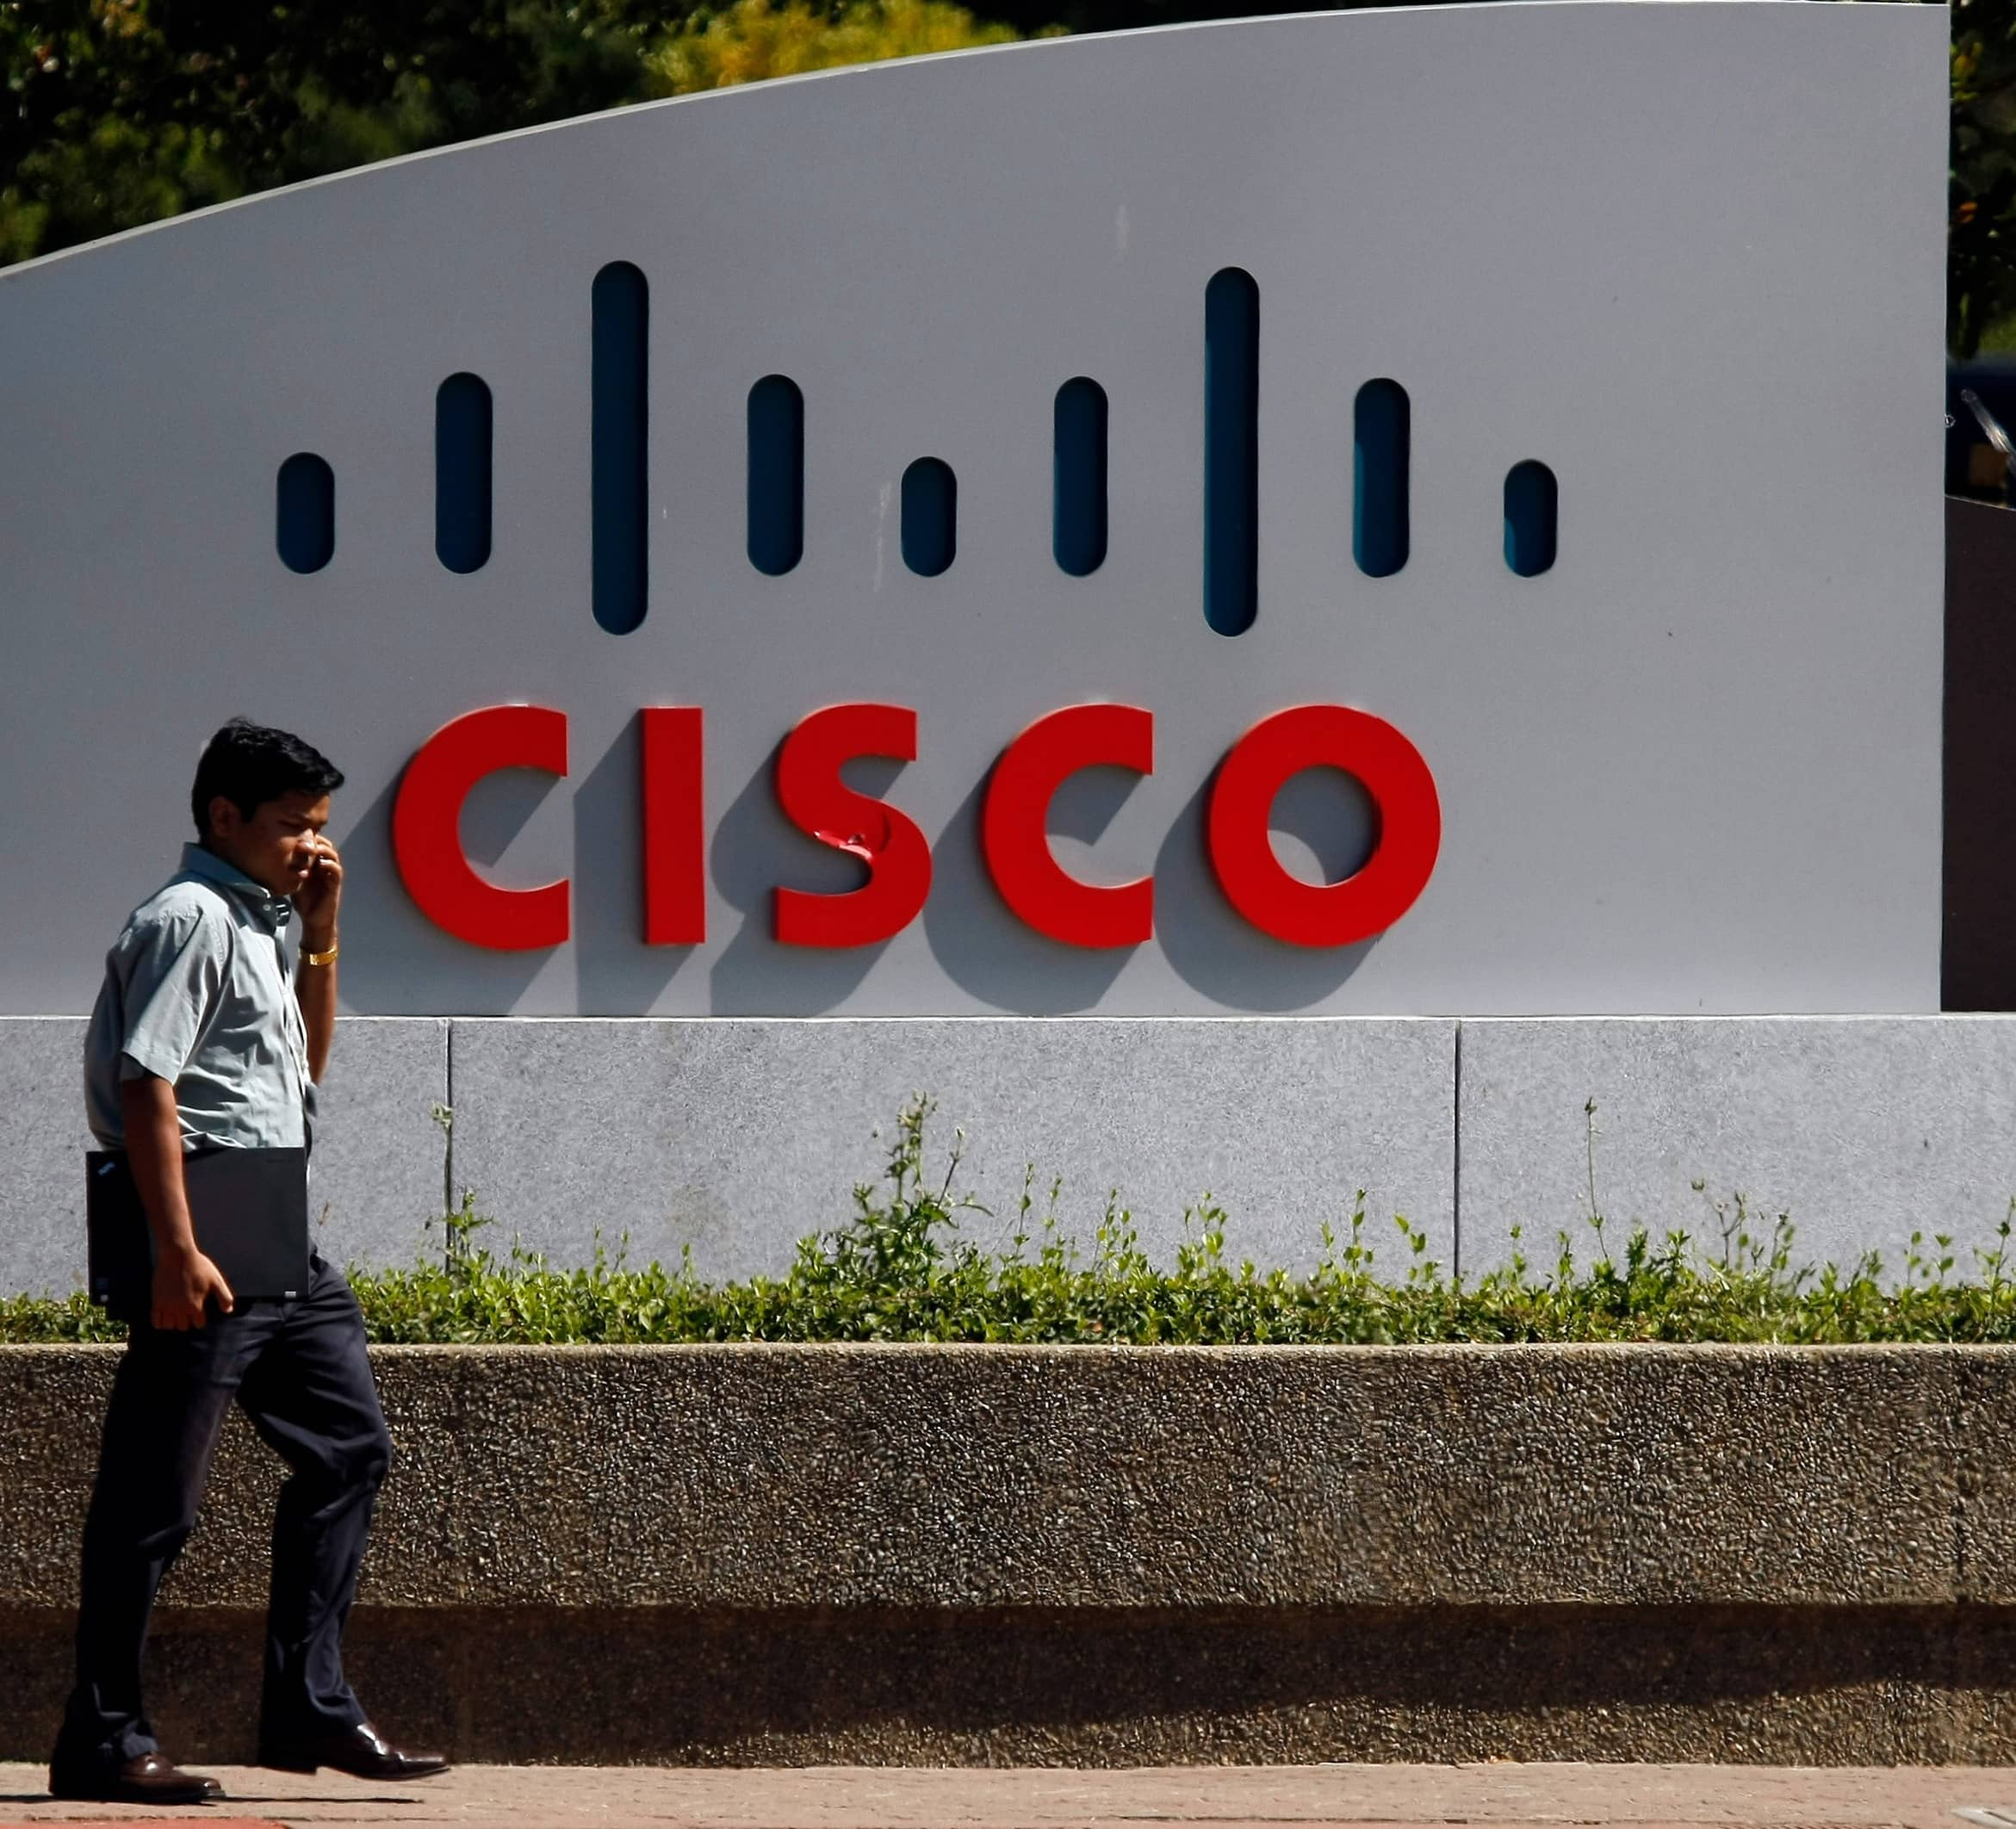 California Sues Cisco For Bias Based On Indian Caste System